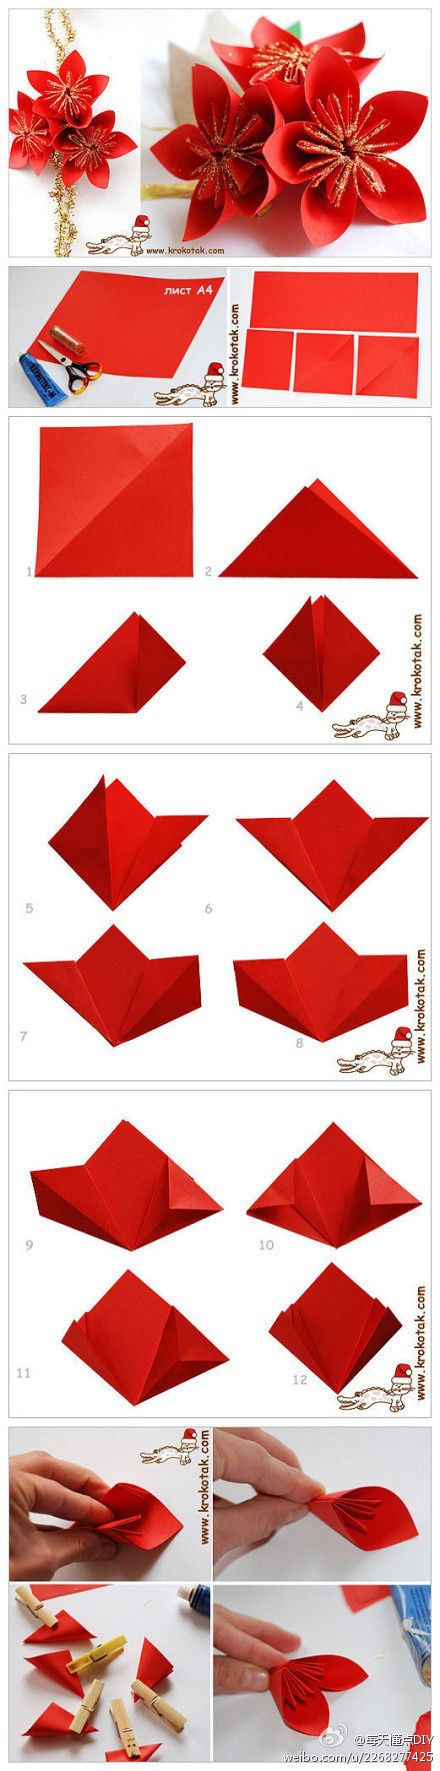 40 best diy origami projects to keep your entertained today 40 best diy origami projects to keep your entertained today origami tutorial diy origami and animal fun mightylinksfo Gallery